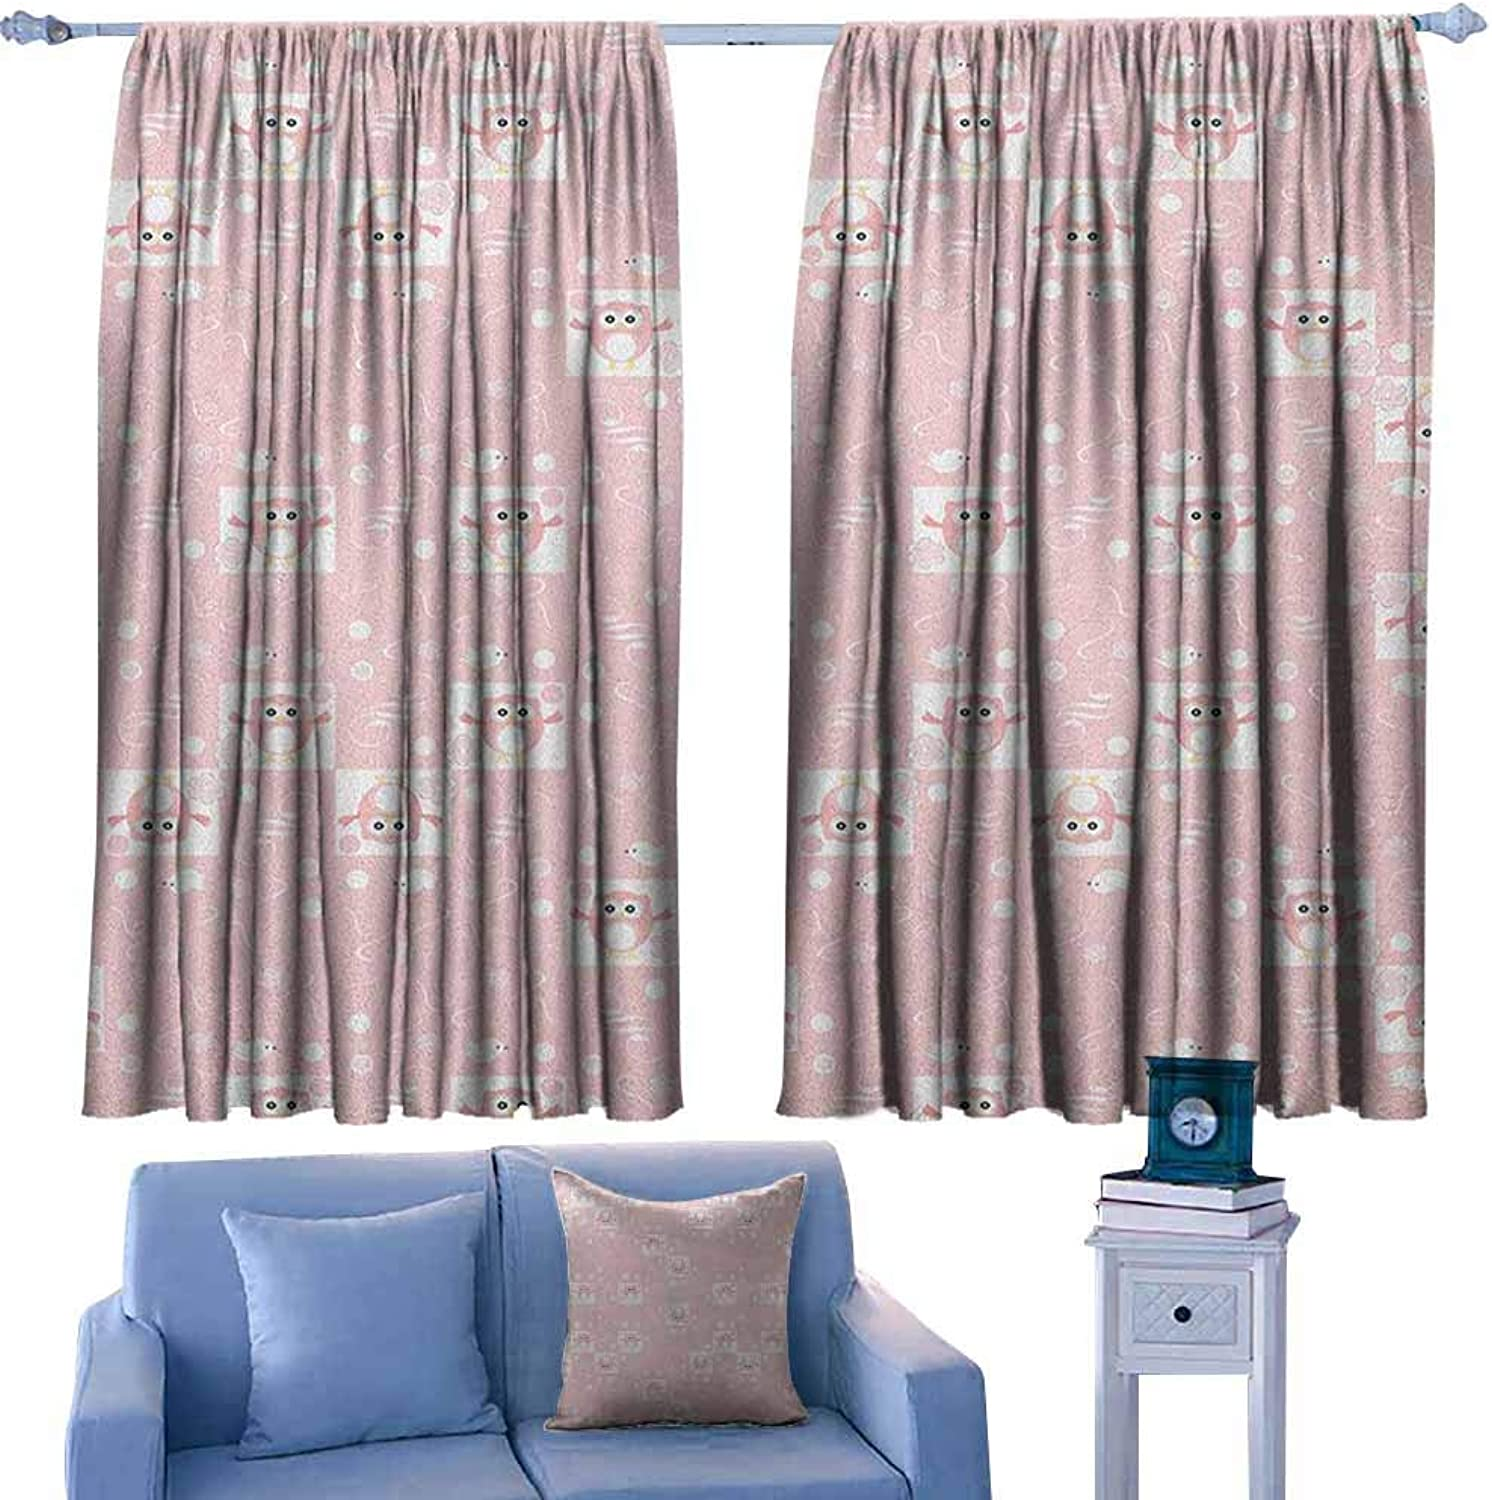 AndyTours Rod Pocket Blackout Drapes,Kids Pink Owls and Little Birds on Cute Floral Backdrop Girlish Pattern with Swirls,Insulated with Curtains for Bedroom,W55x45L Inches Pale Pink White